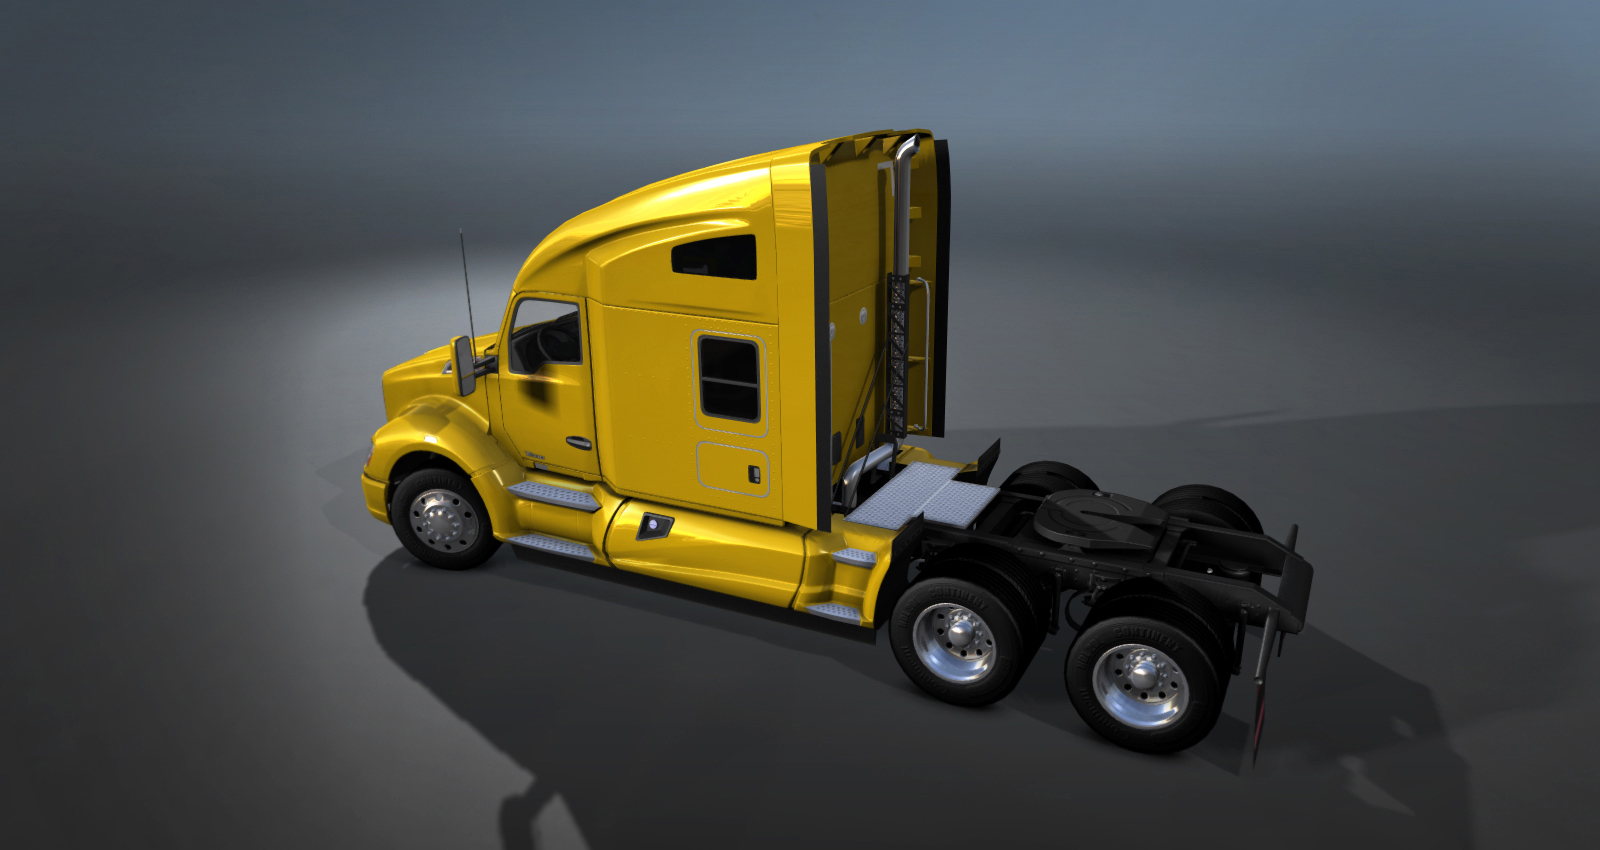 Scs Softwares Blog Review Renders Semi Truck Kenworth Lights Wiring Diagram Saturday April 19 2014